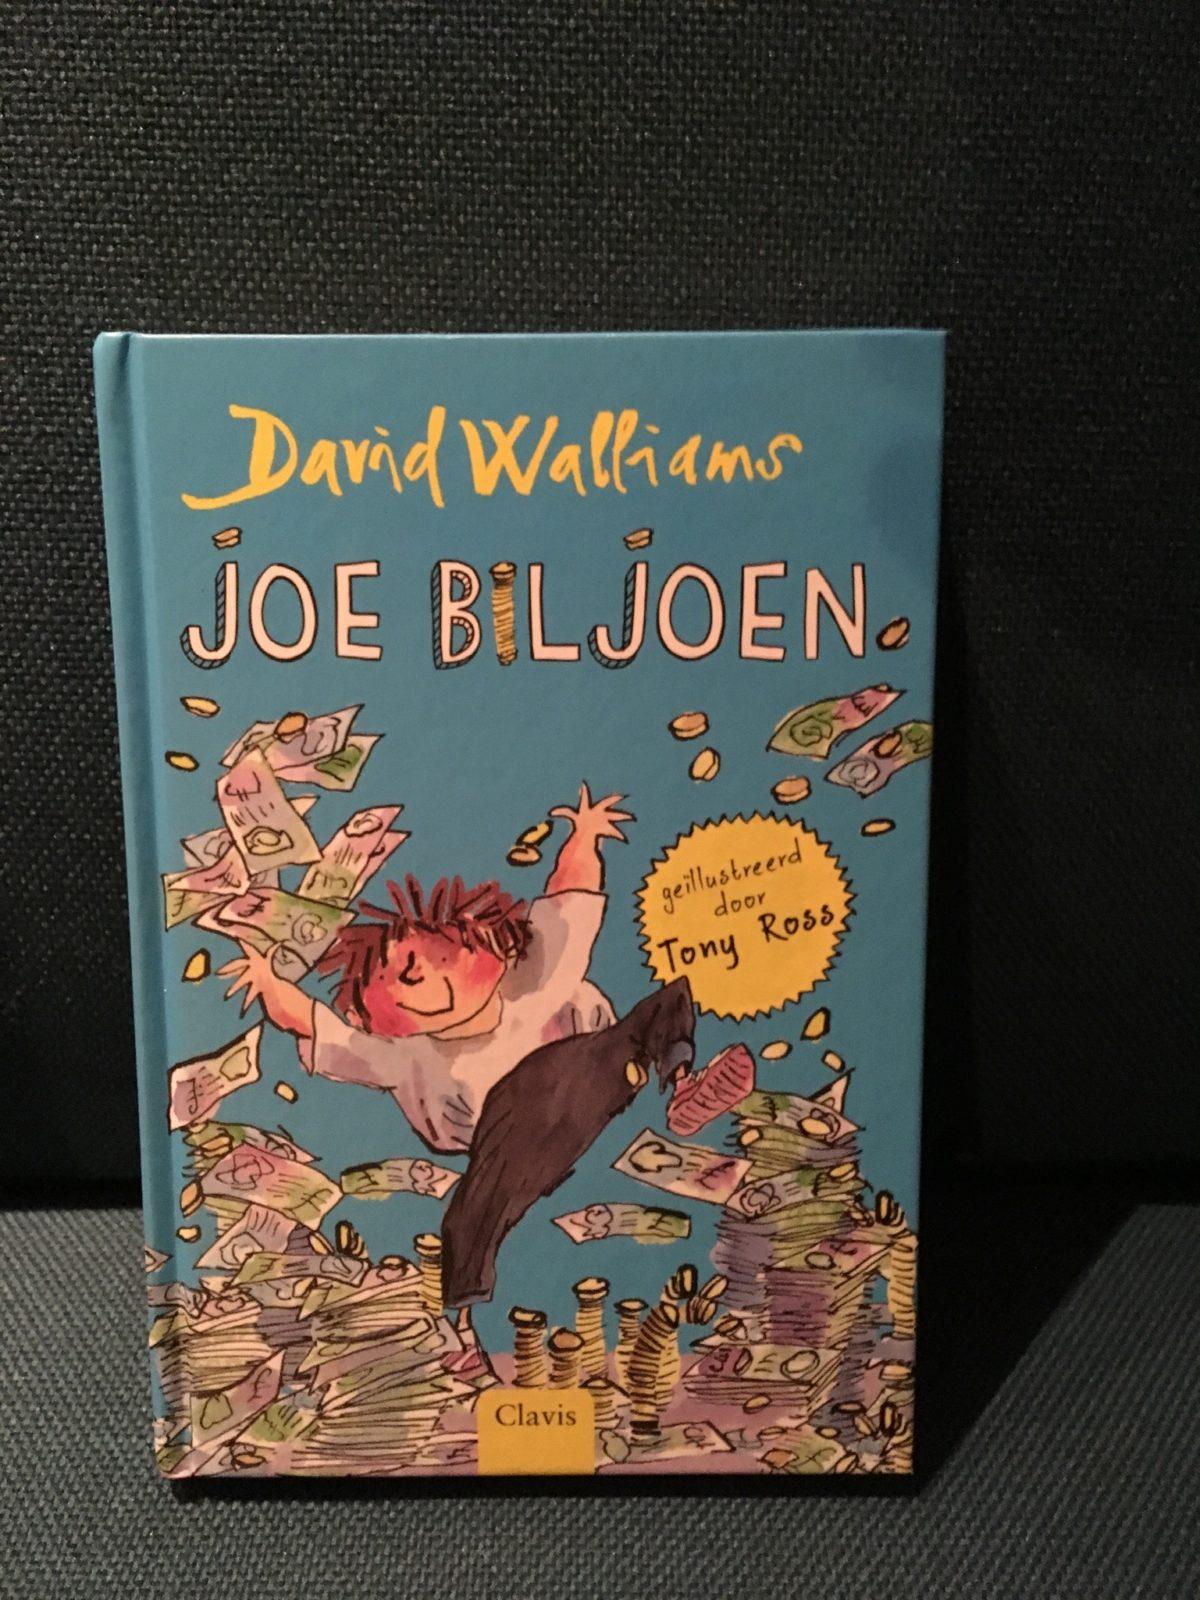 Review: Joe Biljoen